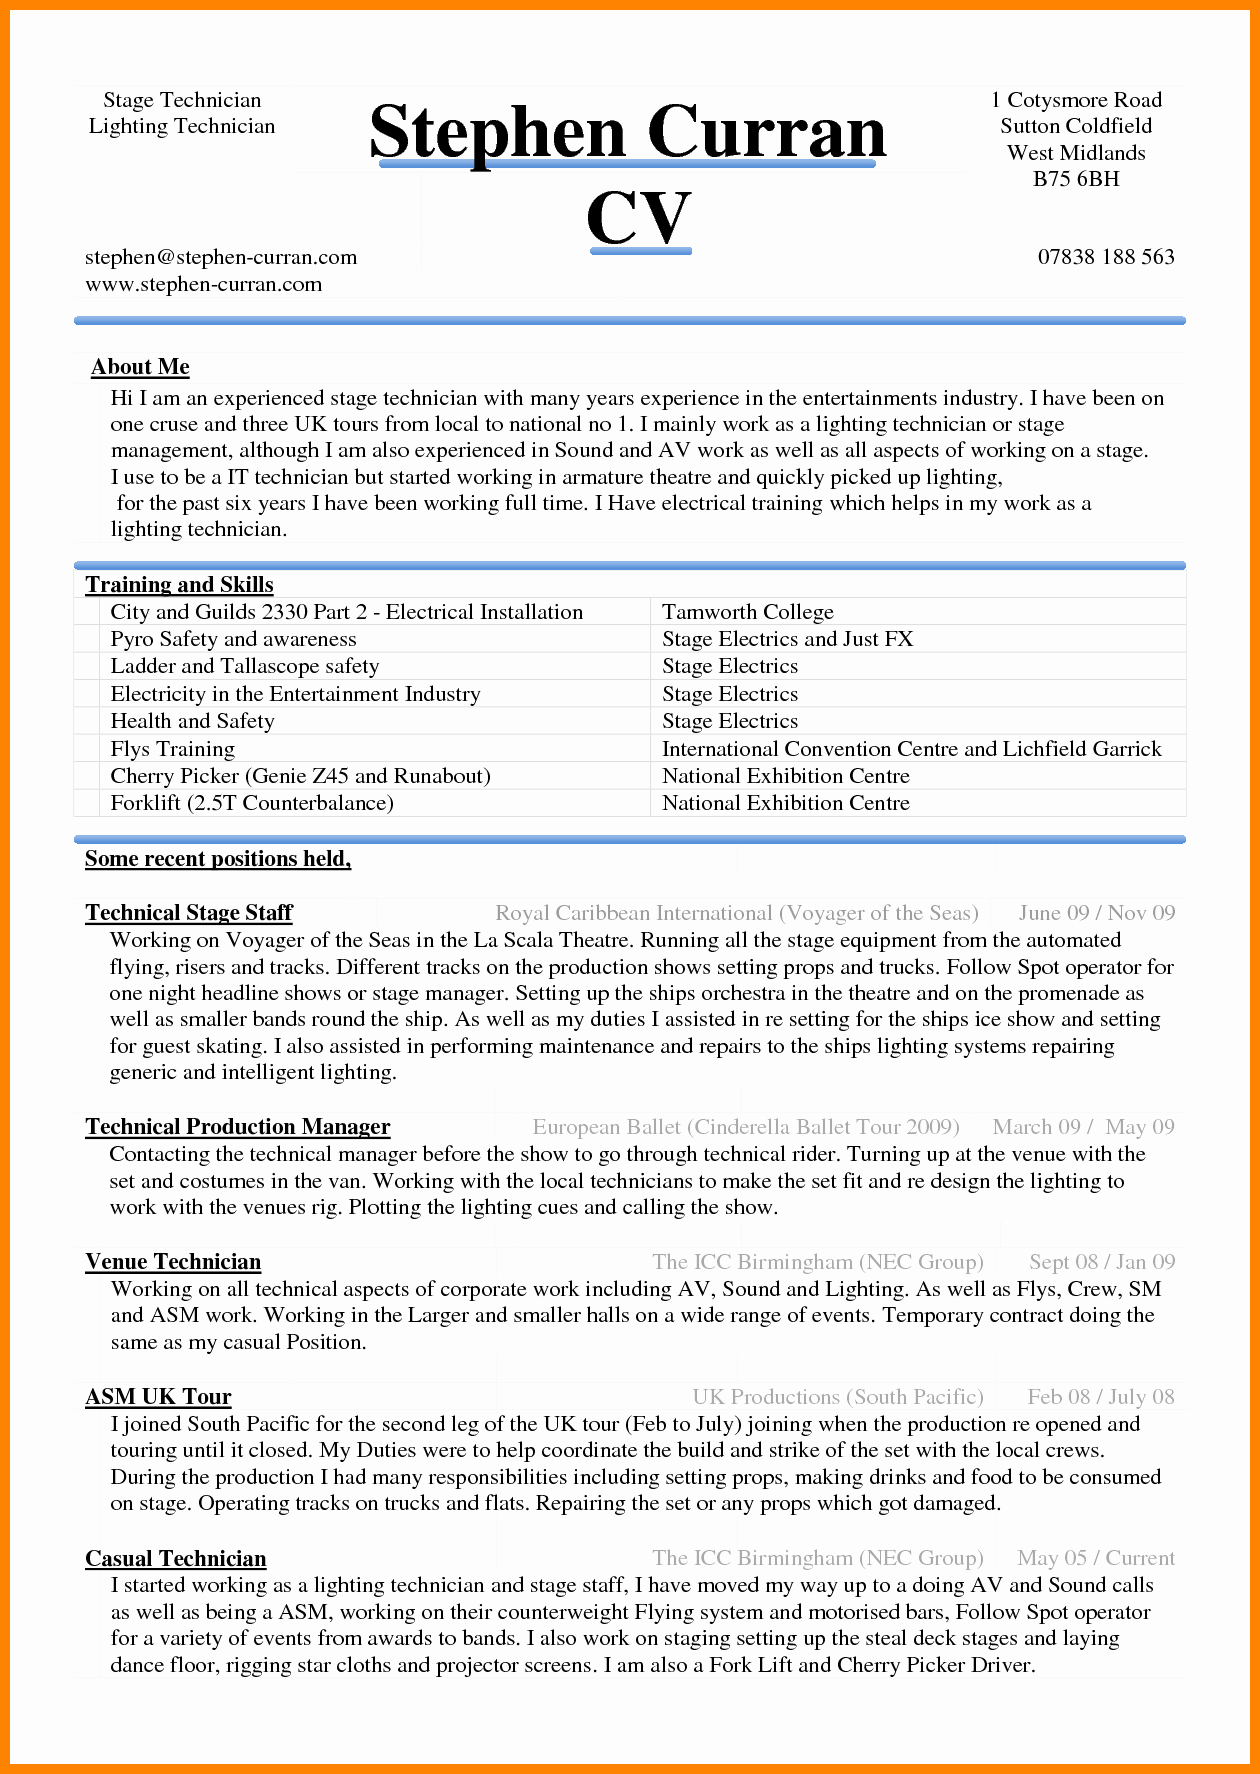 6 Curriculum Vitae In Ms Word